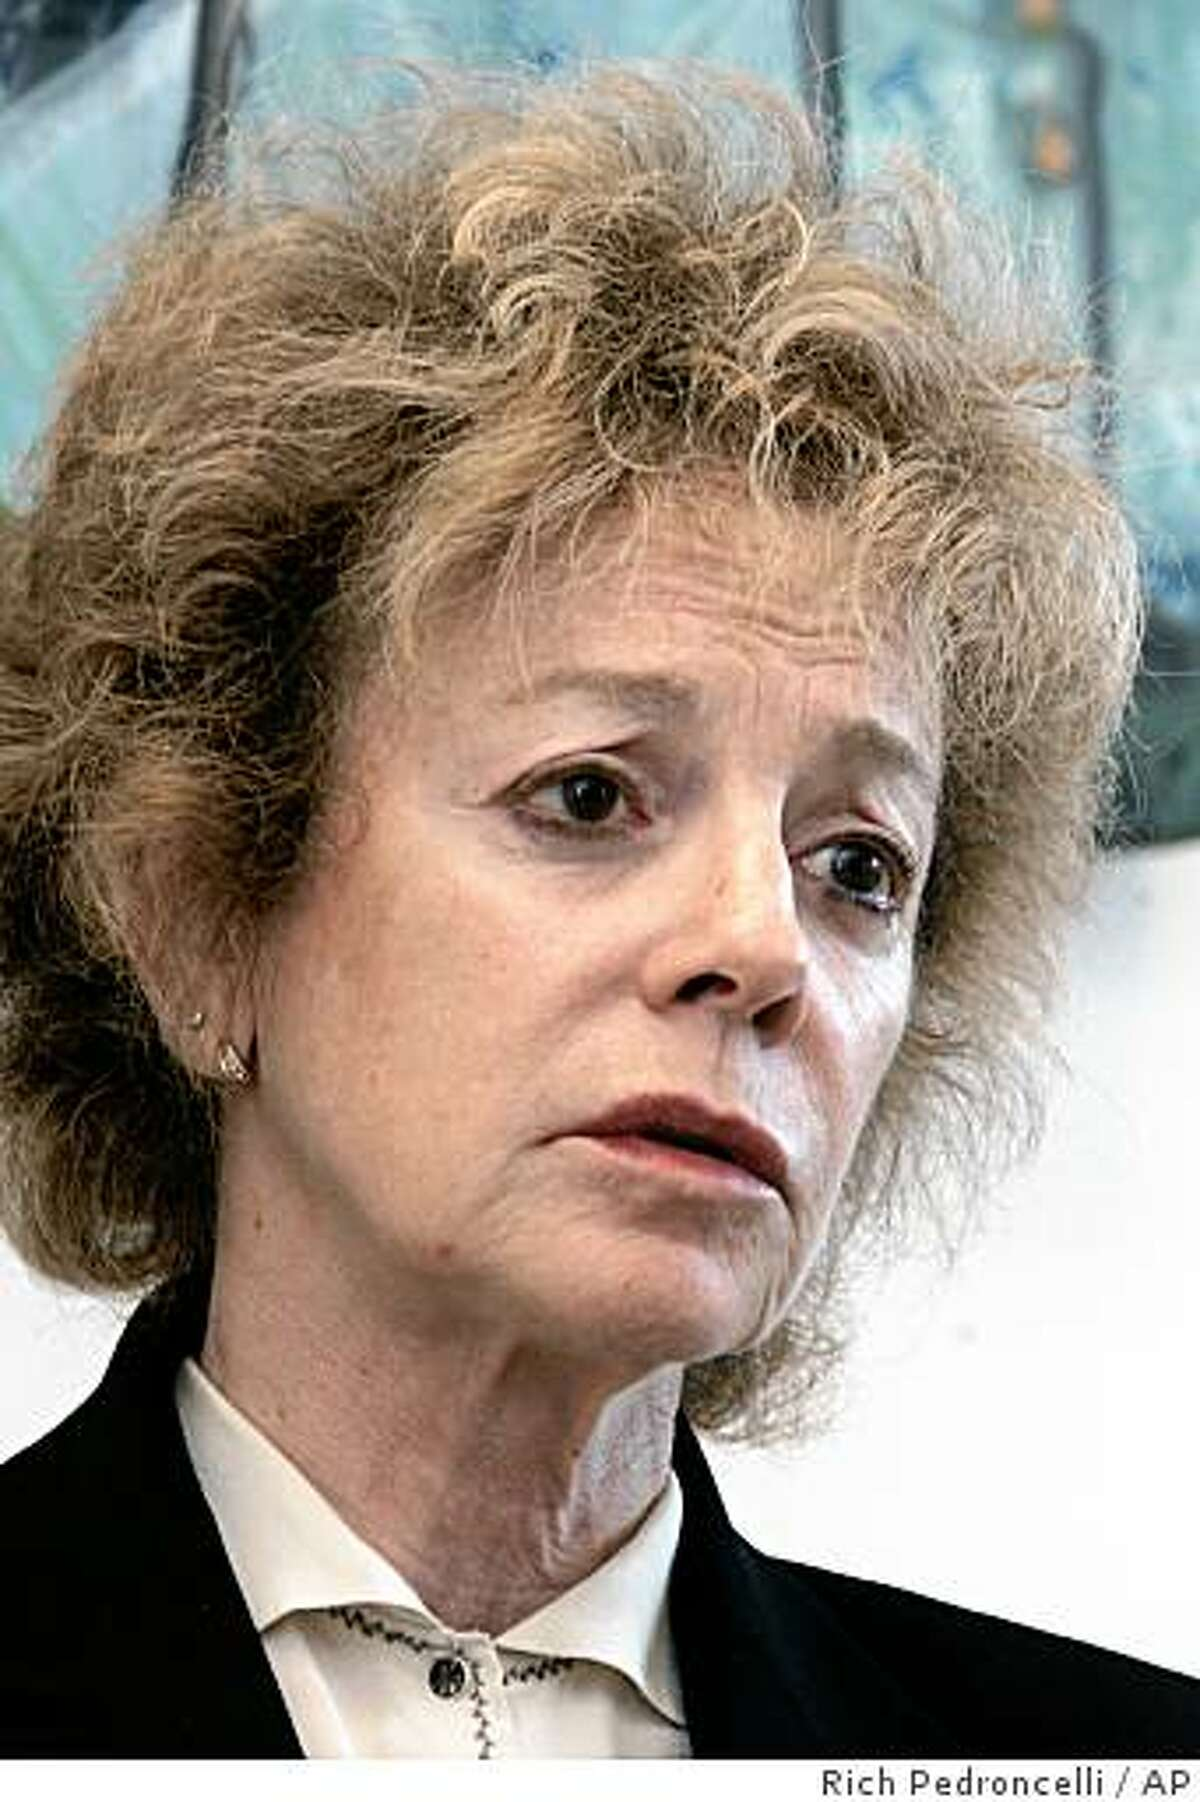 **FILE** State Sen. Carole Migden, D-San Francisco, is seen during an interview with the Associated Press at her office in Sacramento, Calif., in this Thursday, May 24, 2007, file photo. The Fair Political Practices Commission, California's political watch dog agency, filed a $9 million lawsuit Tuesday, March 25, 2008, against Migden, accusing her of consistent and deliberate violations of the state's campaign finance laws. (AP Photo/Rich Pedroncelli)